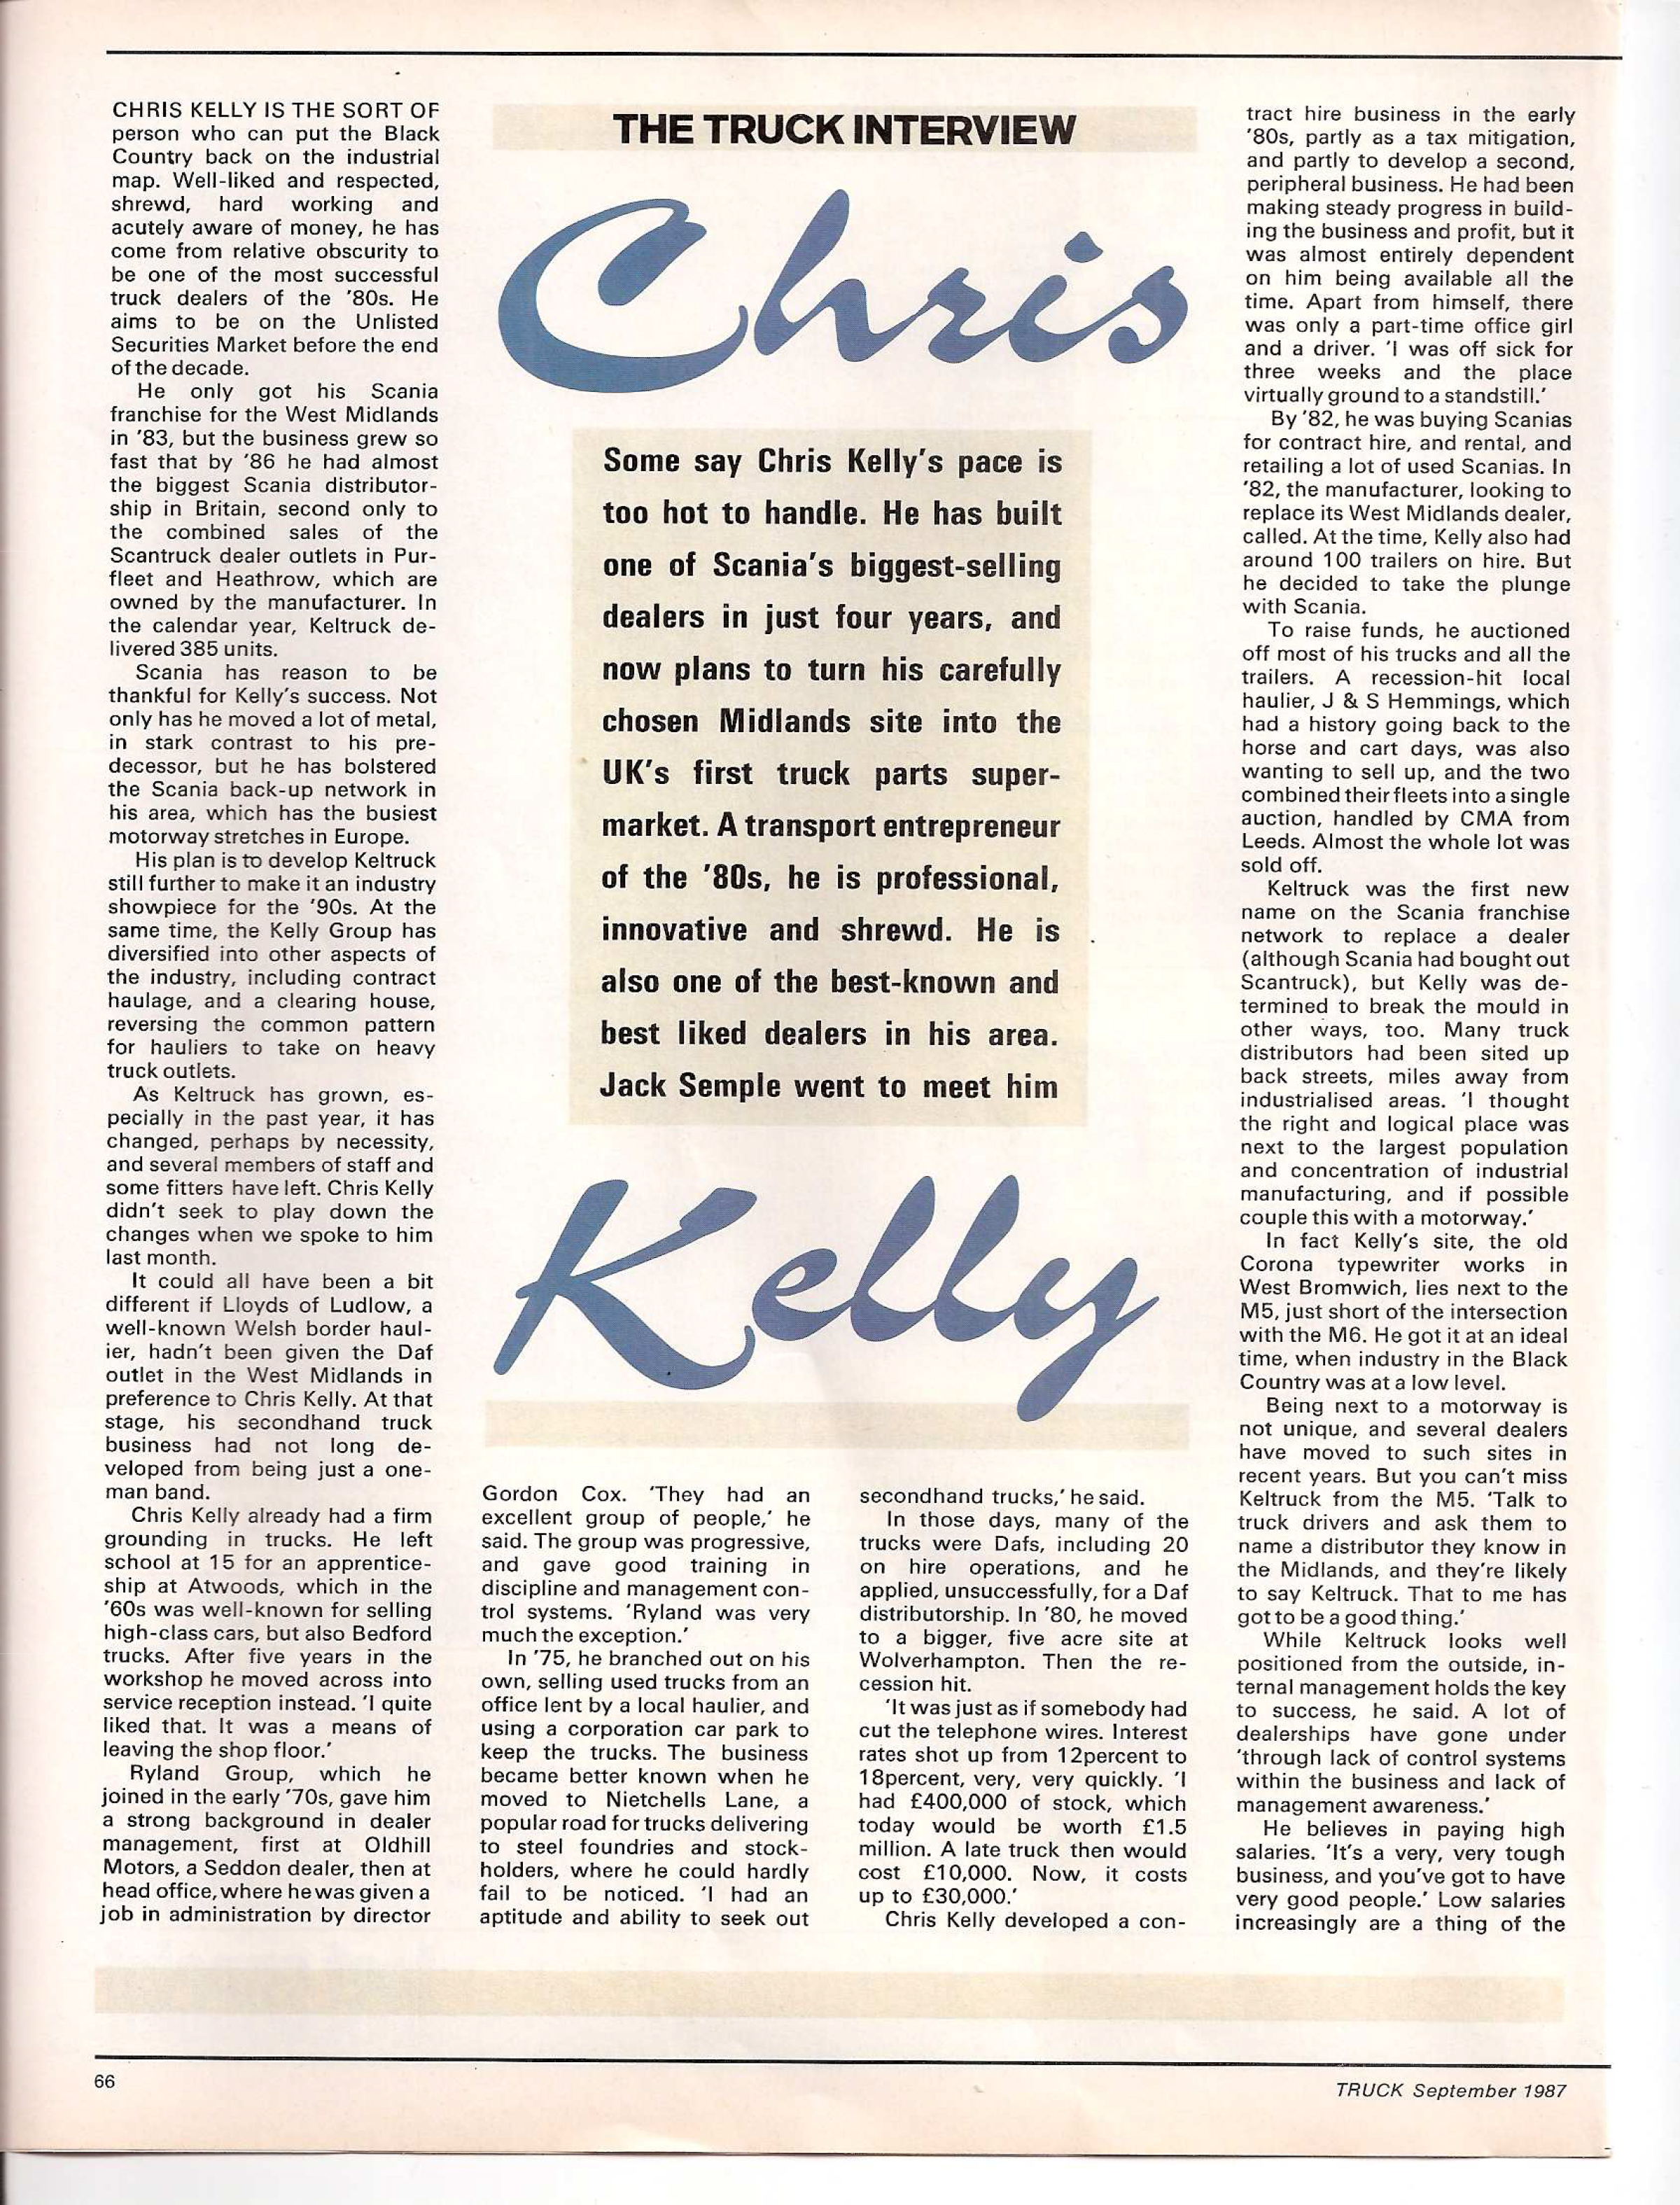 Truck magazine interviews Chris Kelly, September 1987